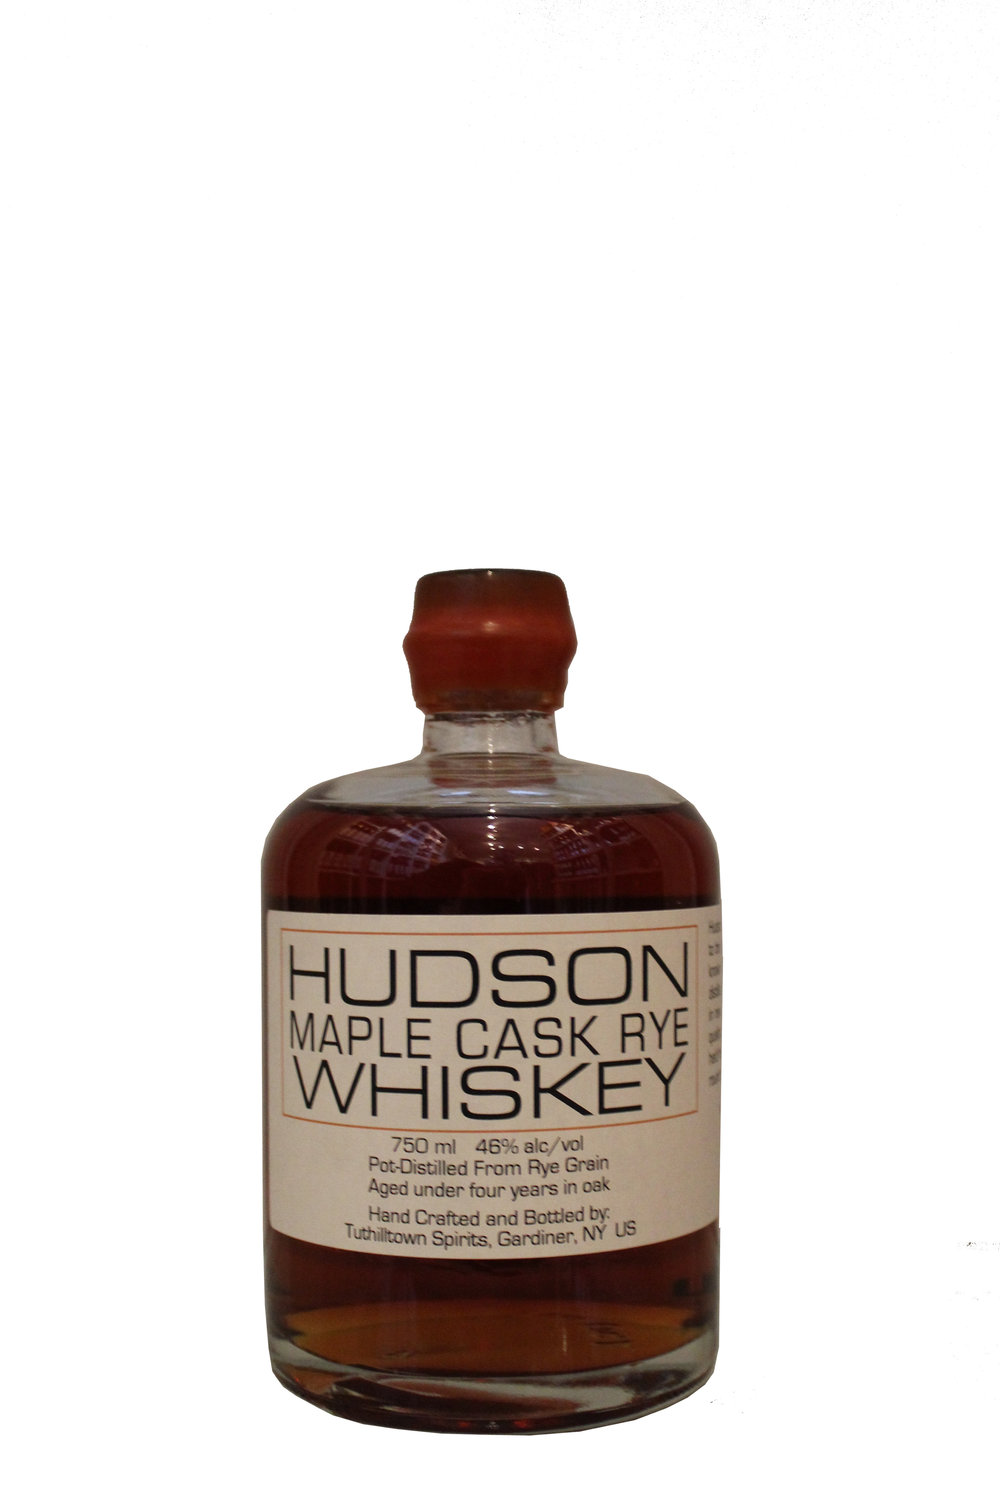 Maple Cask Rye Hudson Whiskey, New York